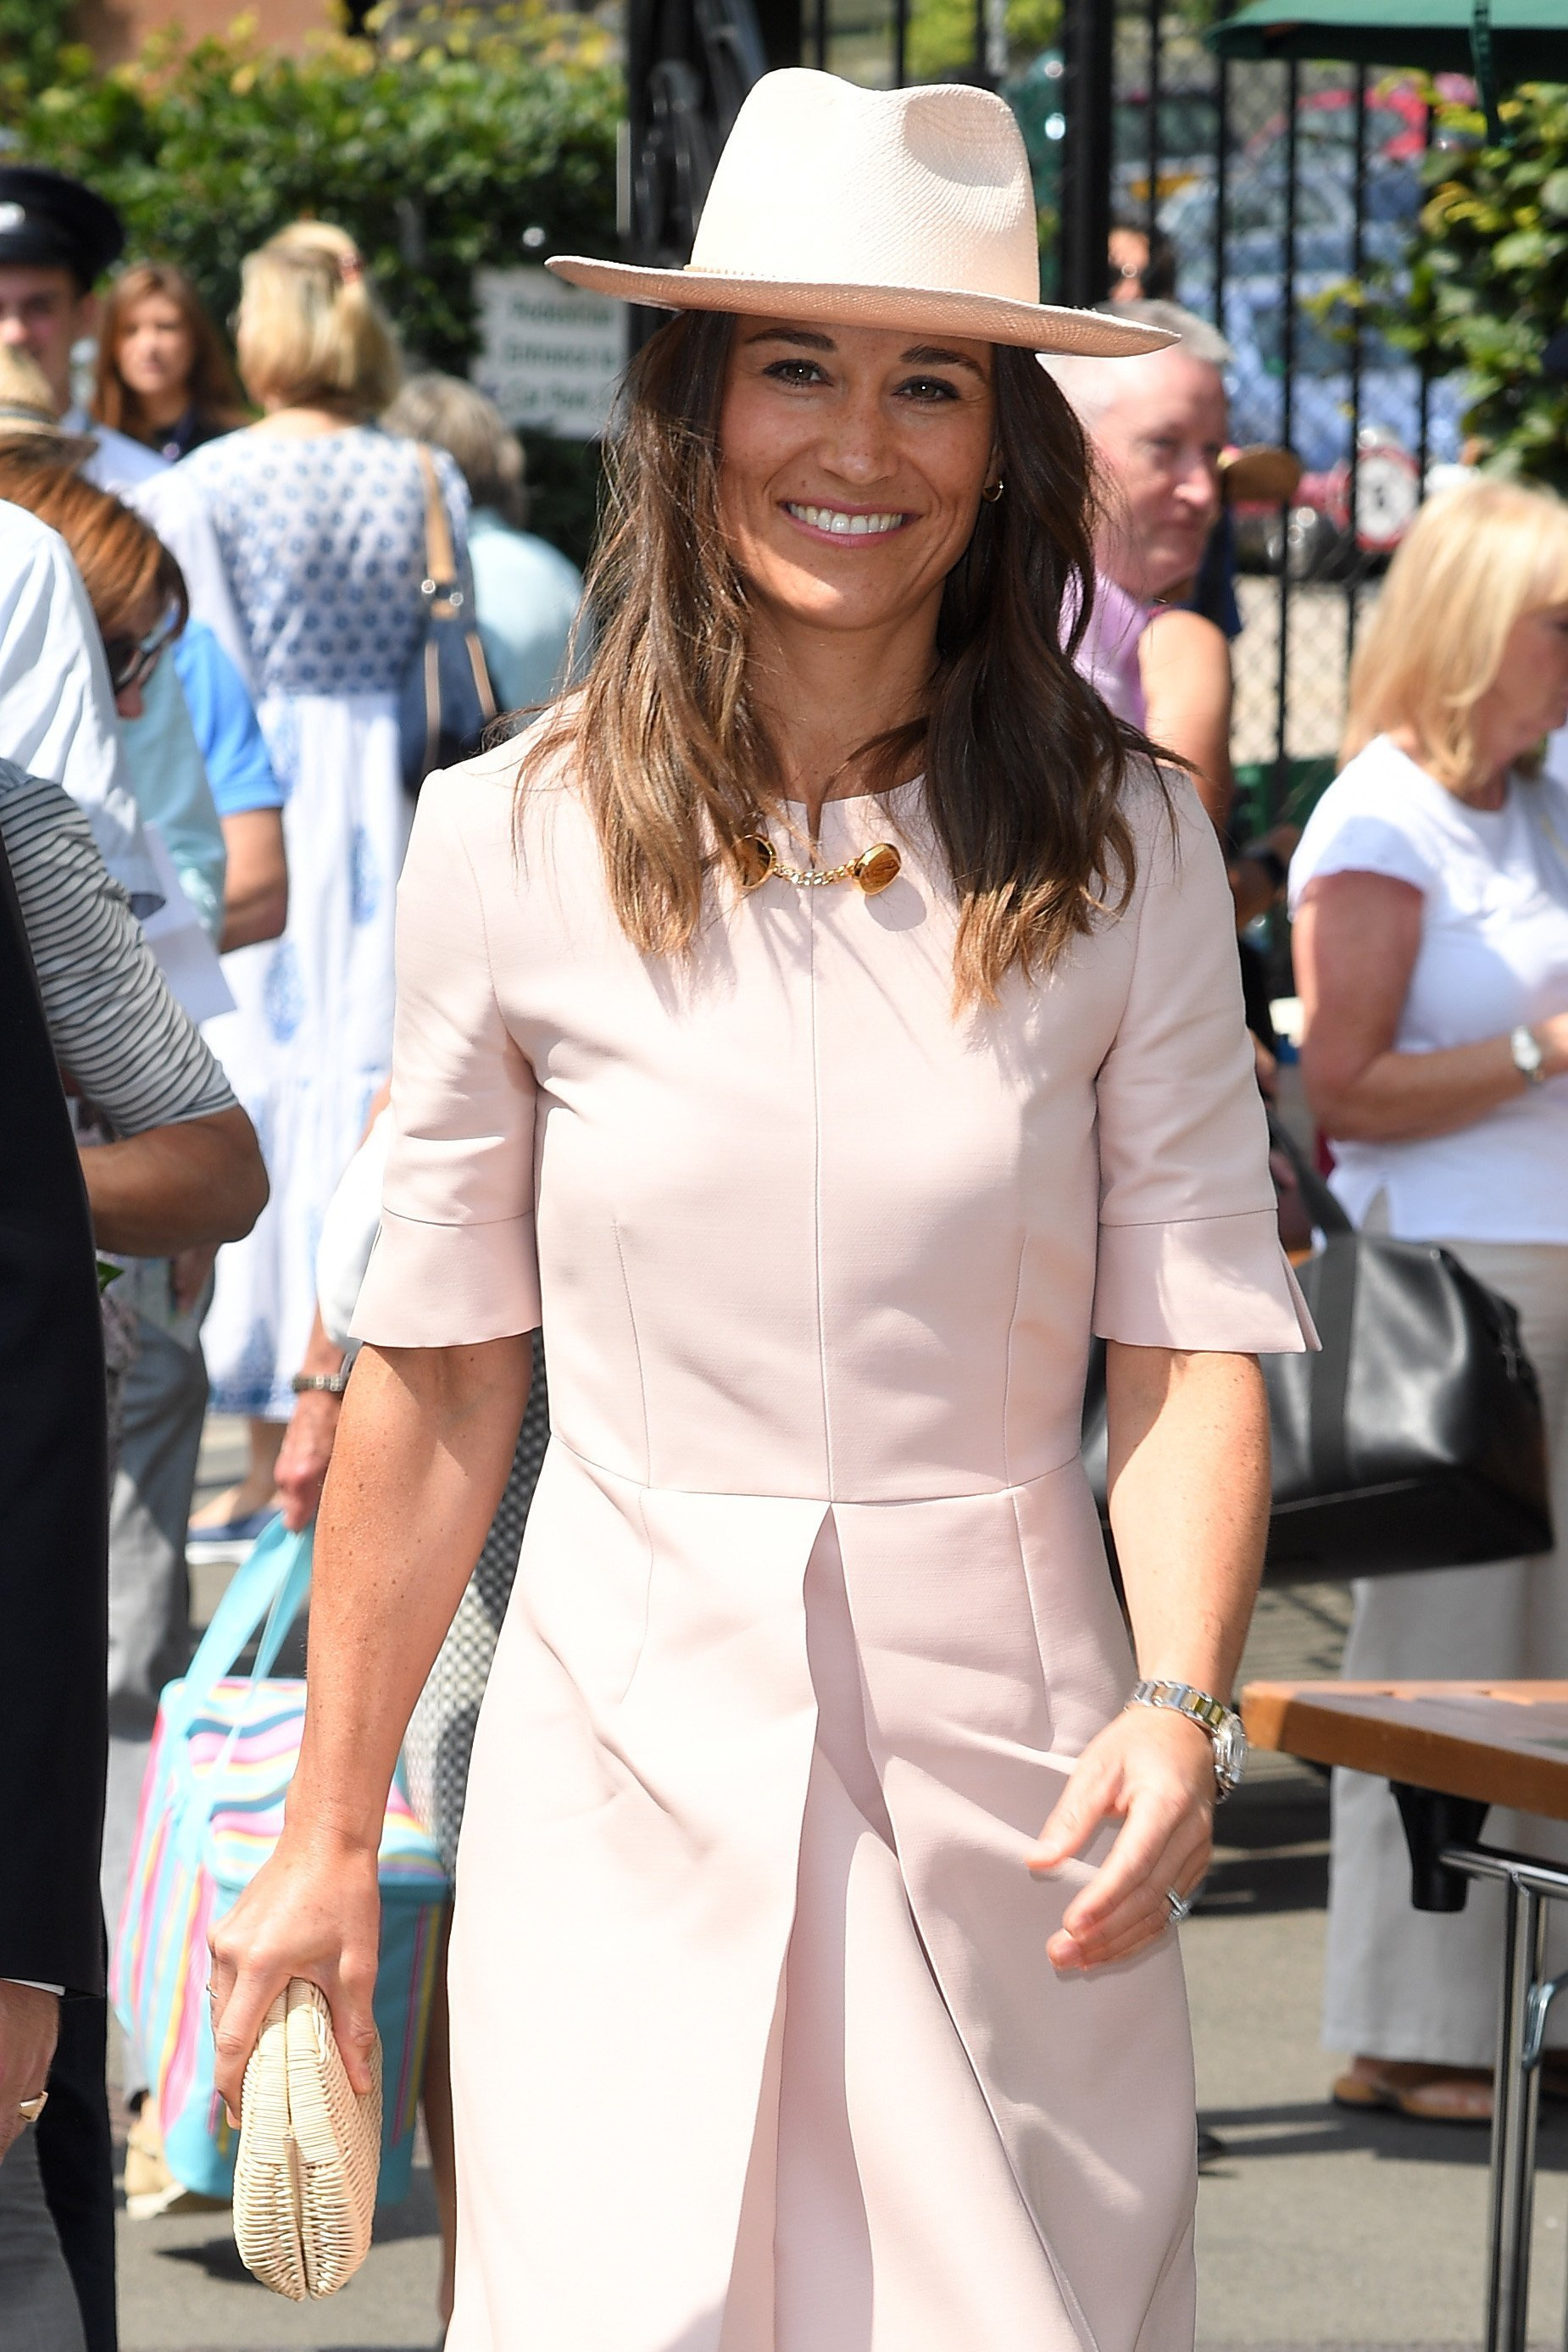 Pippa Middleton during day seven of the Wimbledon Tennis Championships, July 8, 2019 | Photo: Getty Images